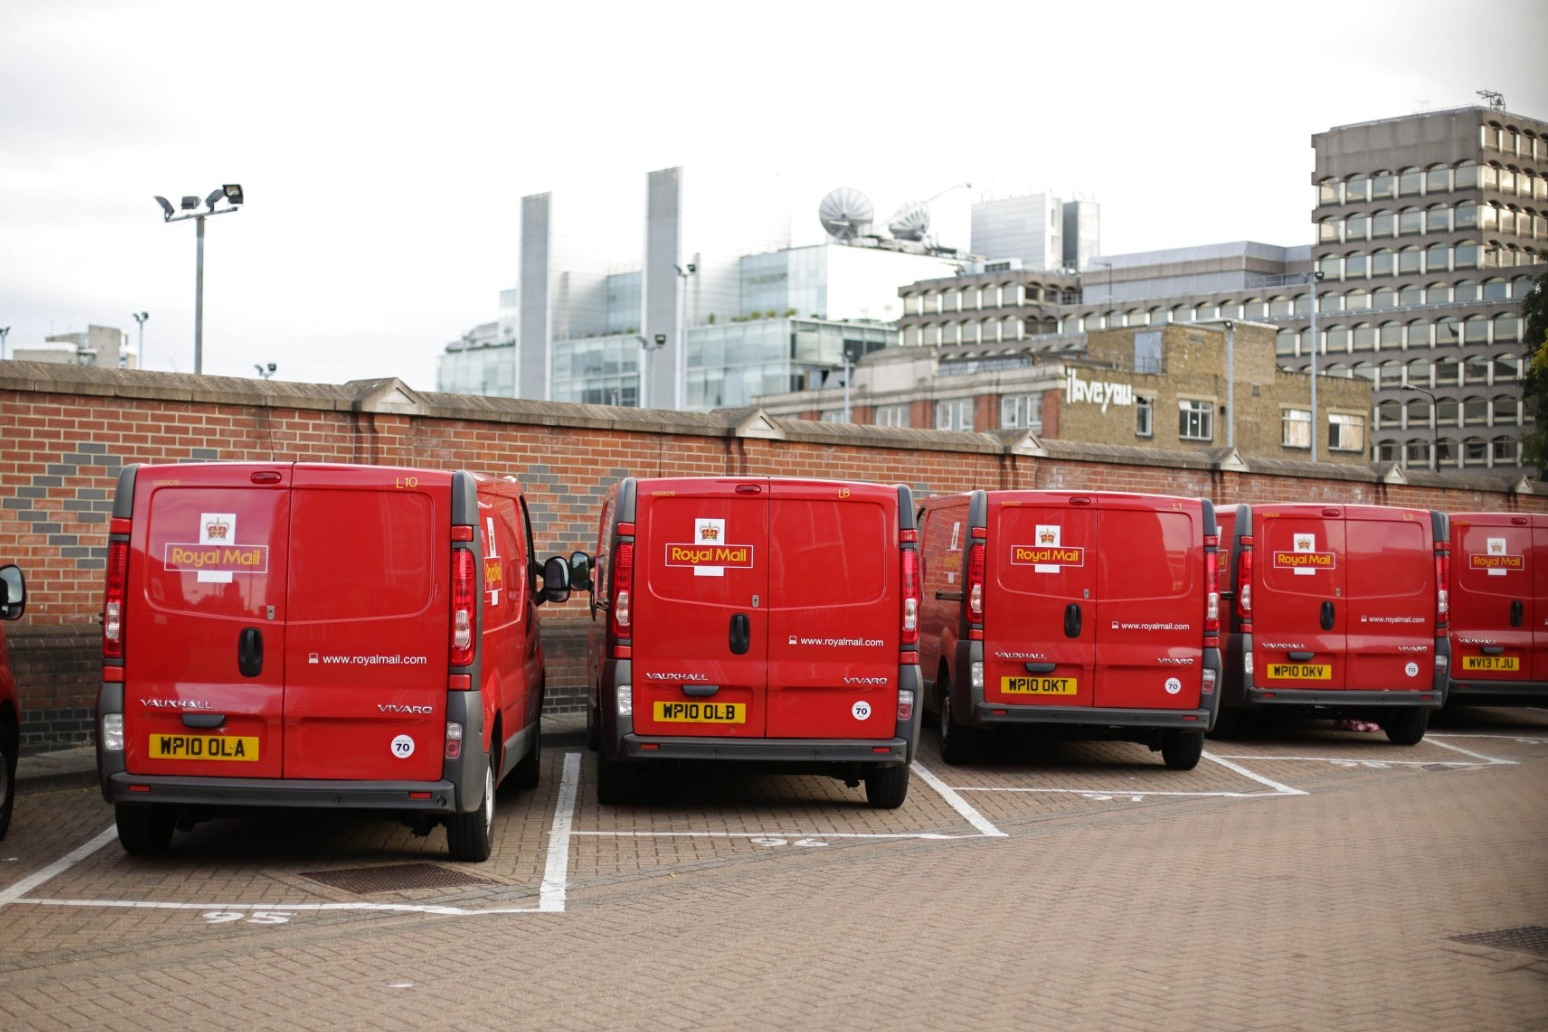 ROYAL MAIL SEEKS INJUNCTION OVER PLANNED STRIKES BY WORKERS